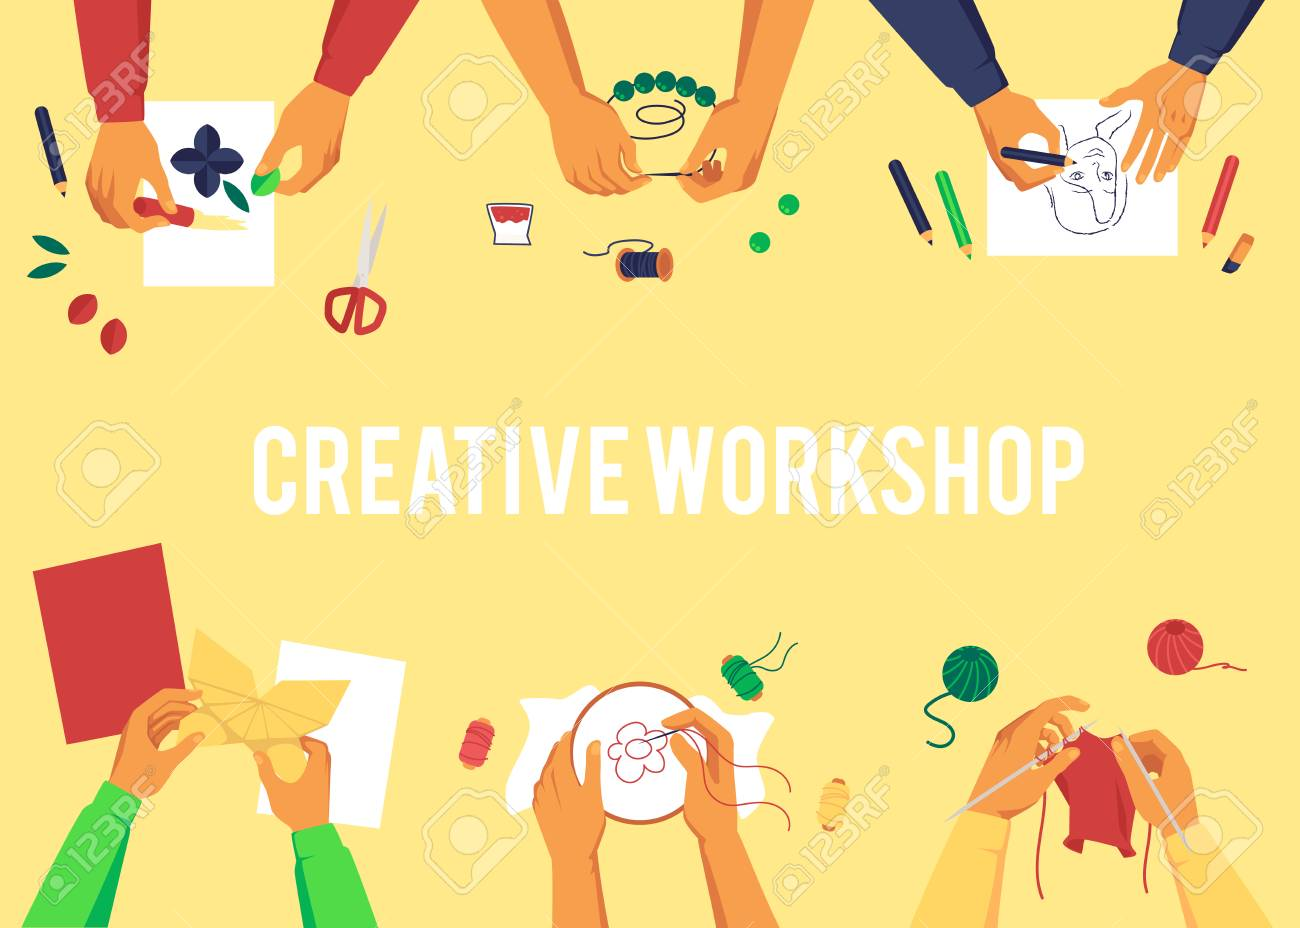 Banner with top view of various hands creating handmade works cartoon style, vector illustration on yellow background with text. Creative workshop themed poster design - 122414875